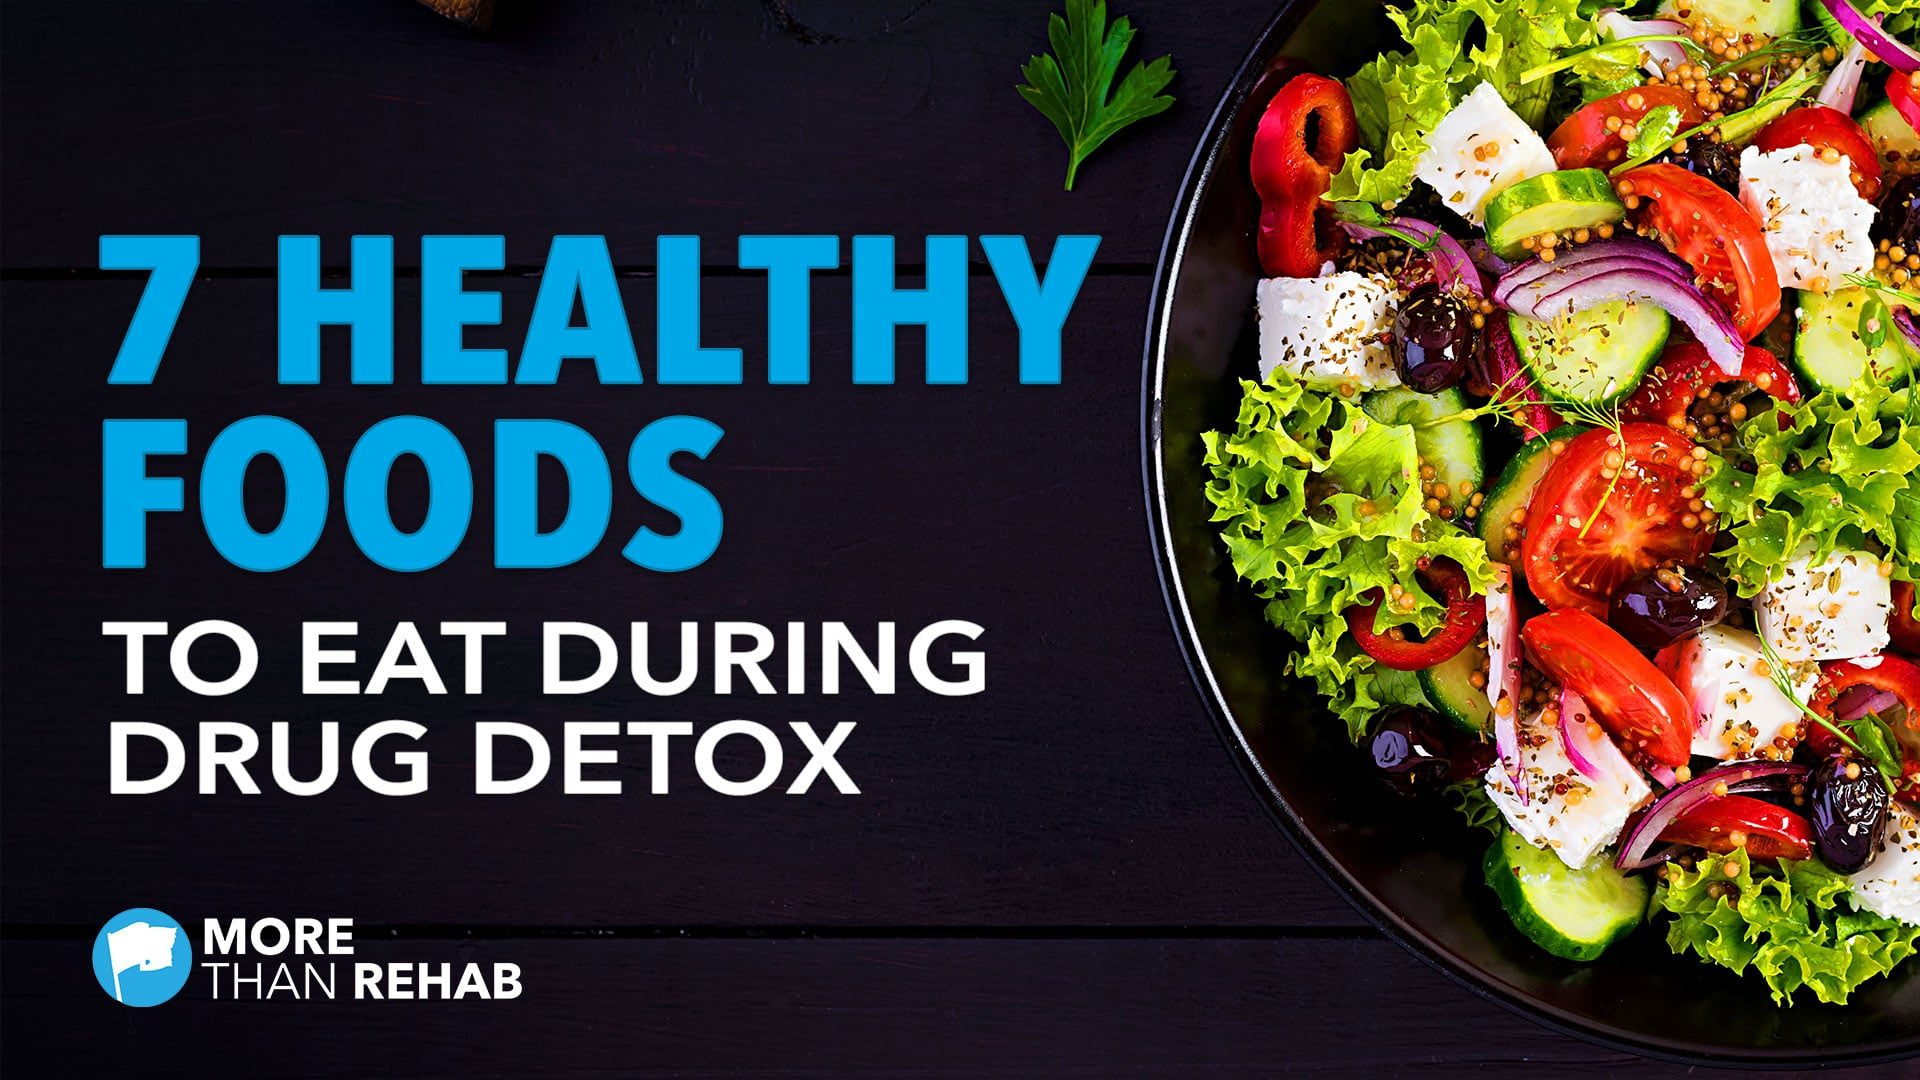 7-healthy-foods-to-eat-while-detoxing-from-drugs-alcohol-addiction-recovery-drug-rehabilitation-Houston-TX